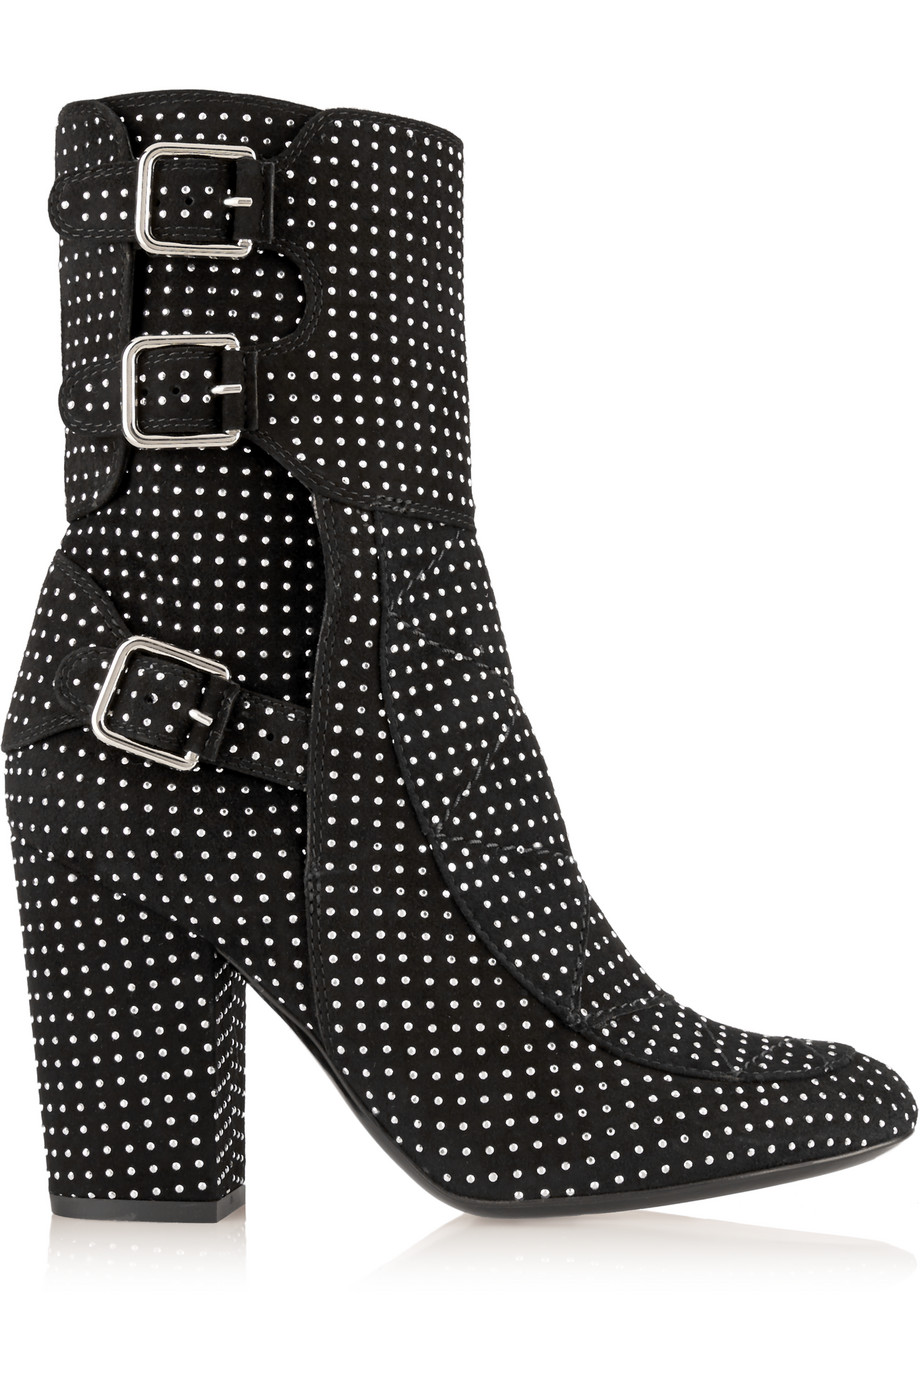 Laurence Dacade Merli Studded Suede Boots, Black, Women's US Size: 7, Size: 37.5